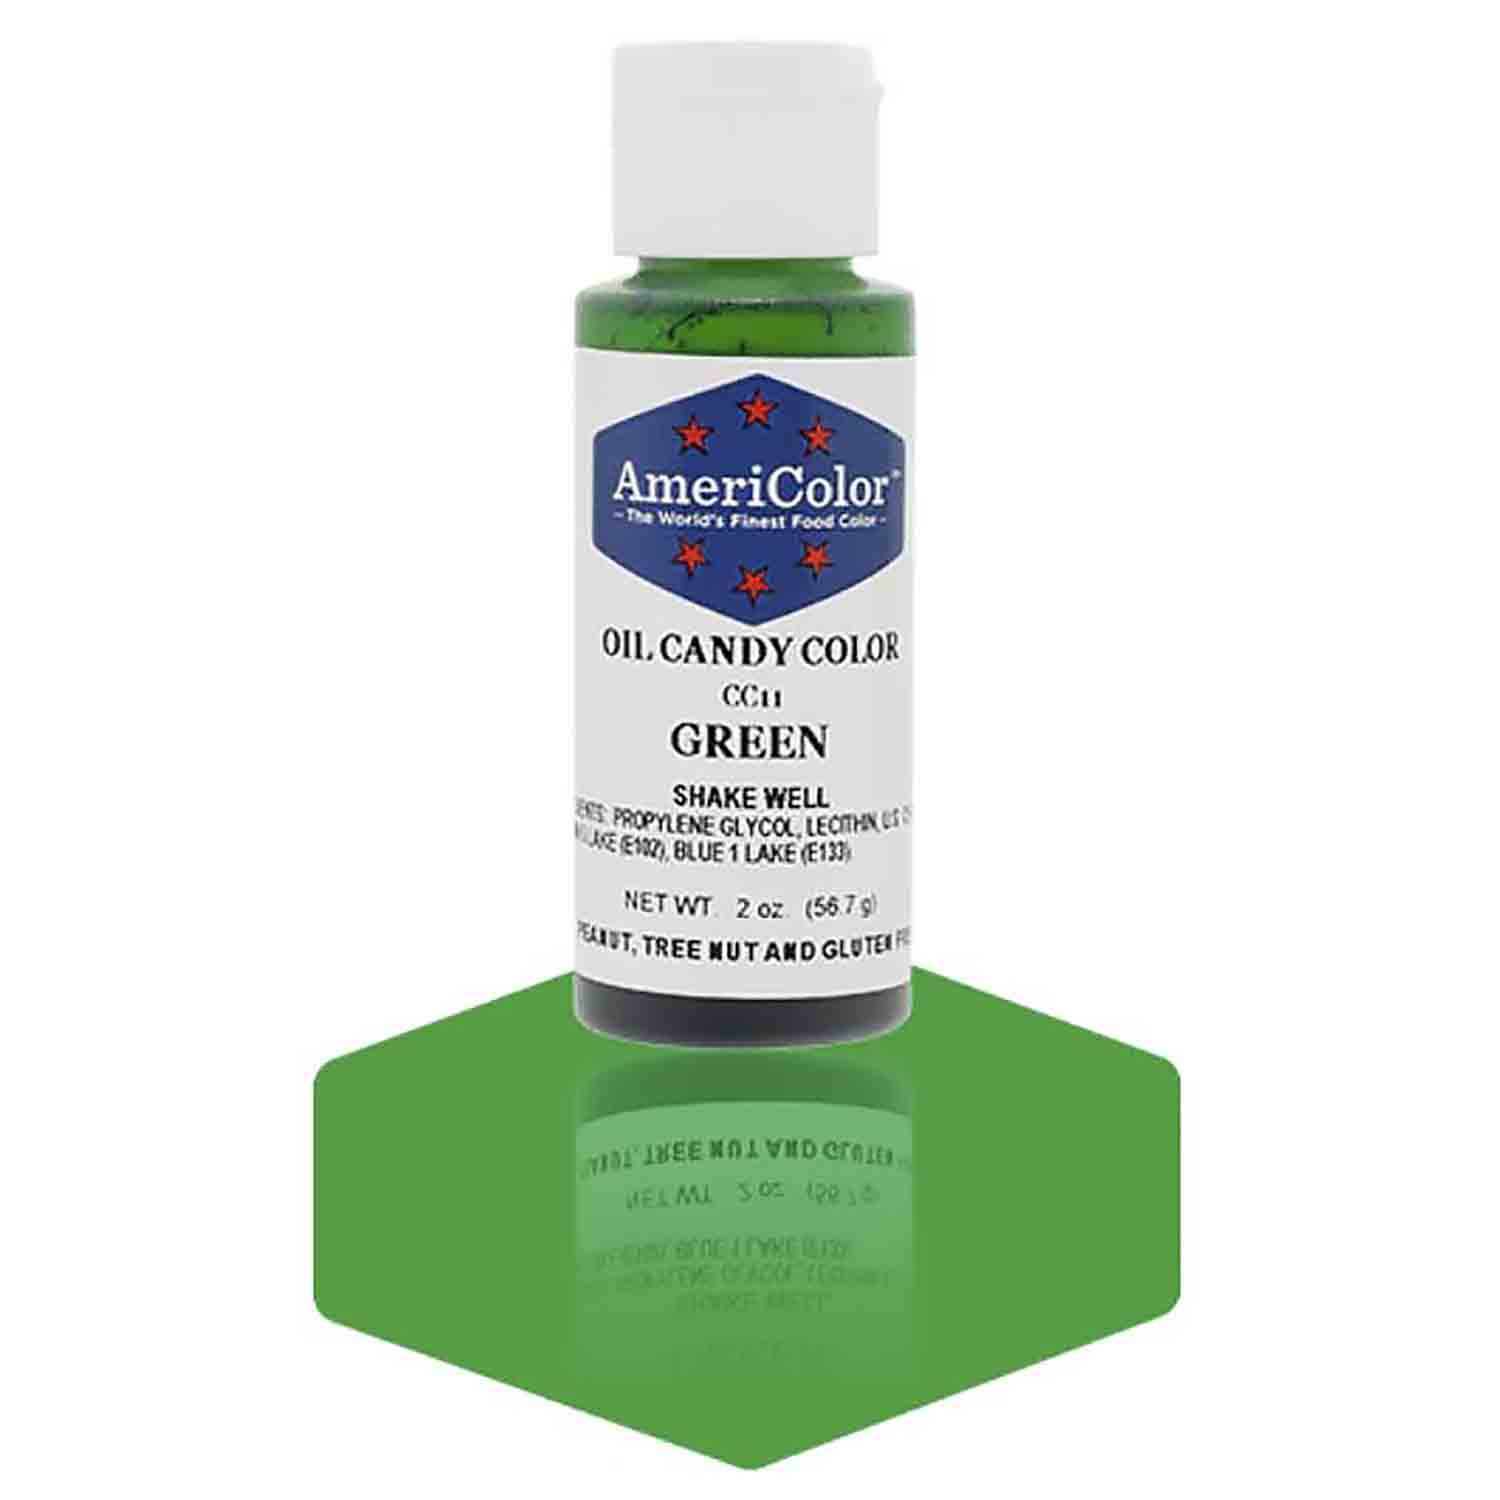 Green Americolor® Oil Candy Color